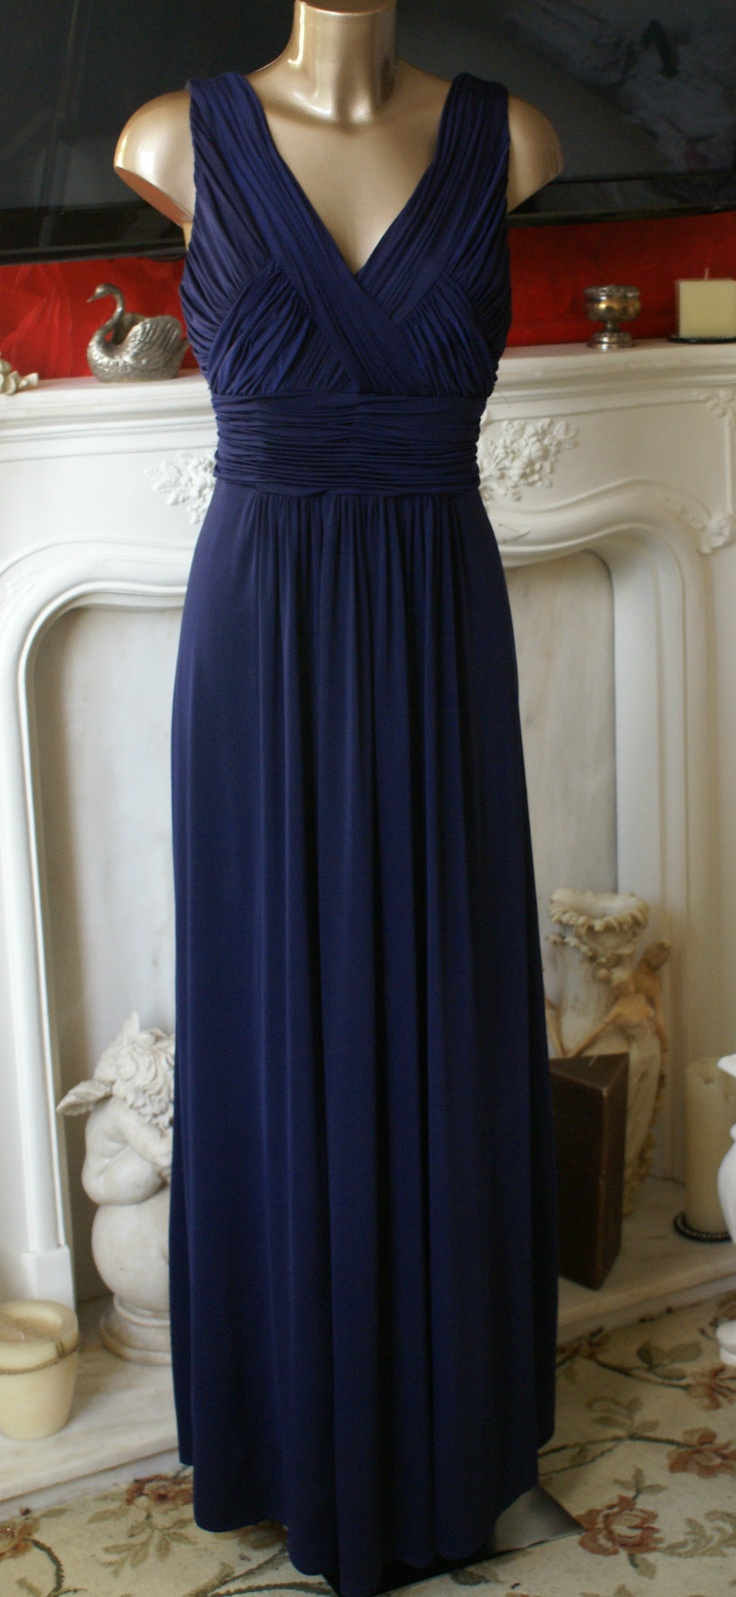 61 best bridesmaid dresses just dee images on pinterest black john lewis dress midnight blue grecian maxi long evening gown pre owned designer ombrellifo Image collections